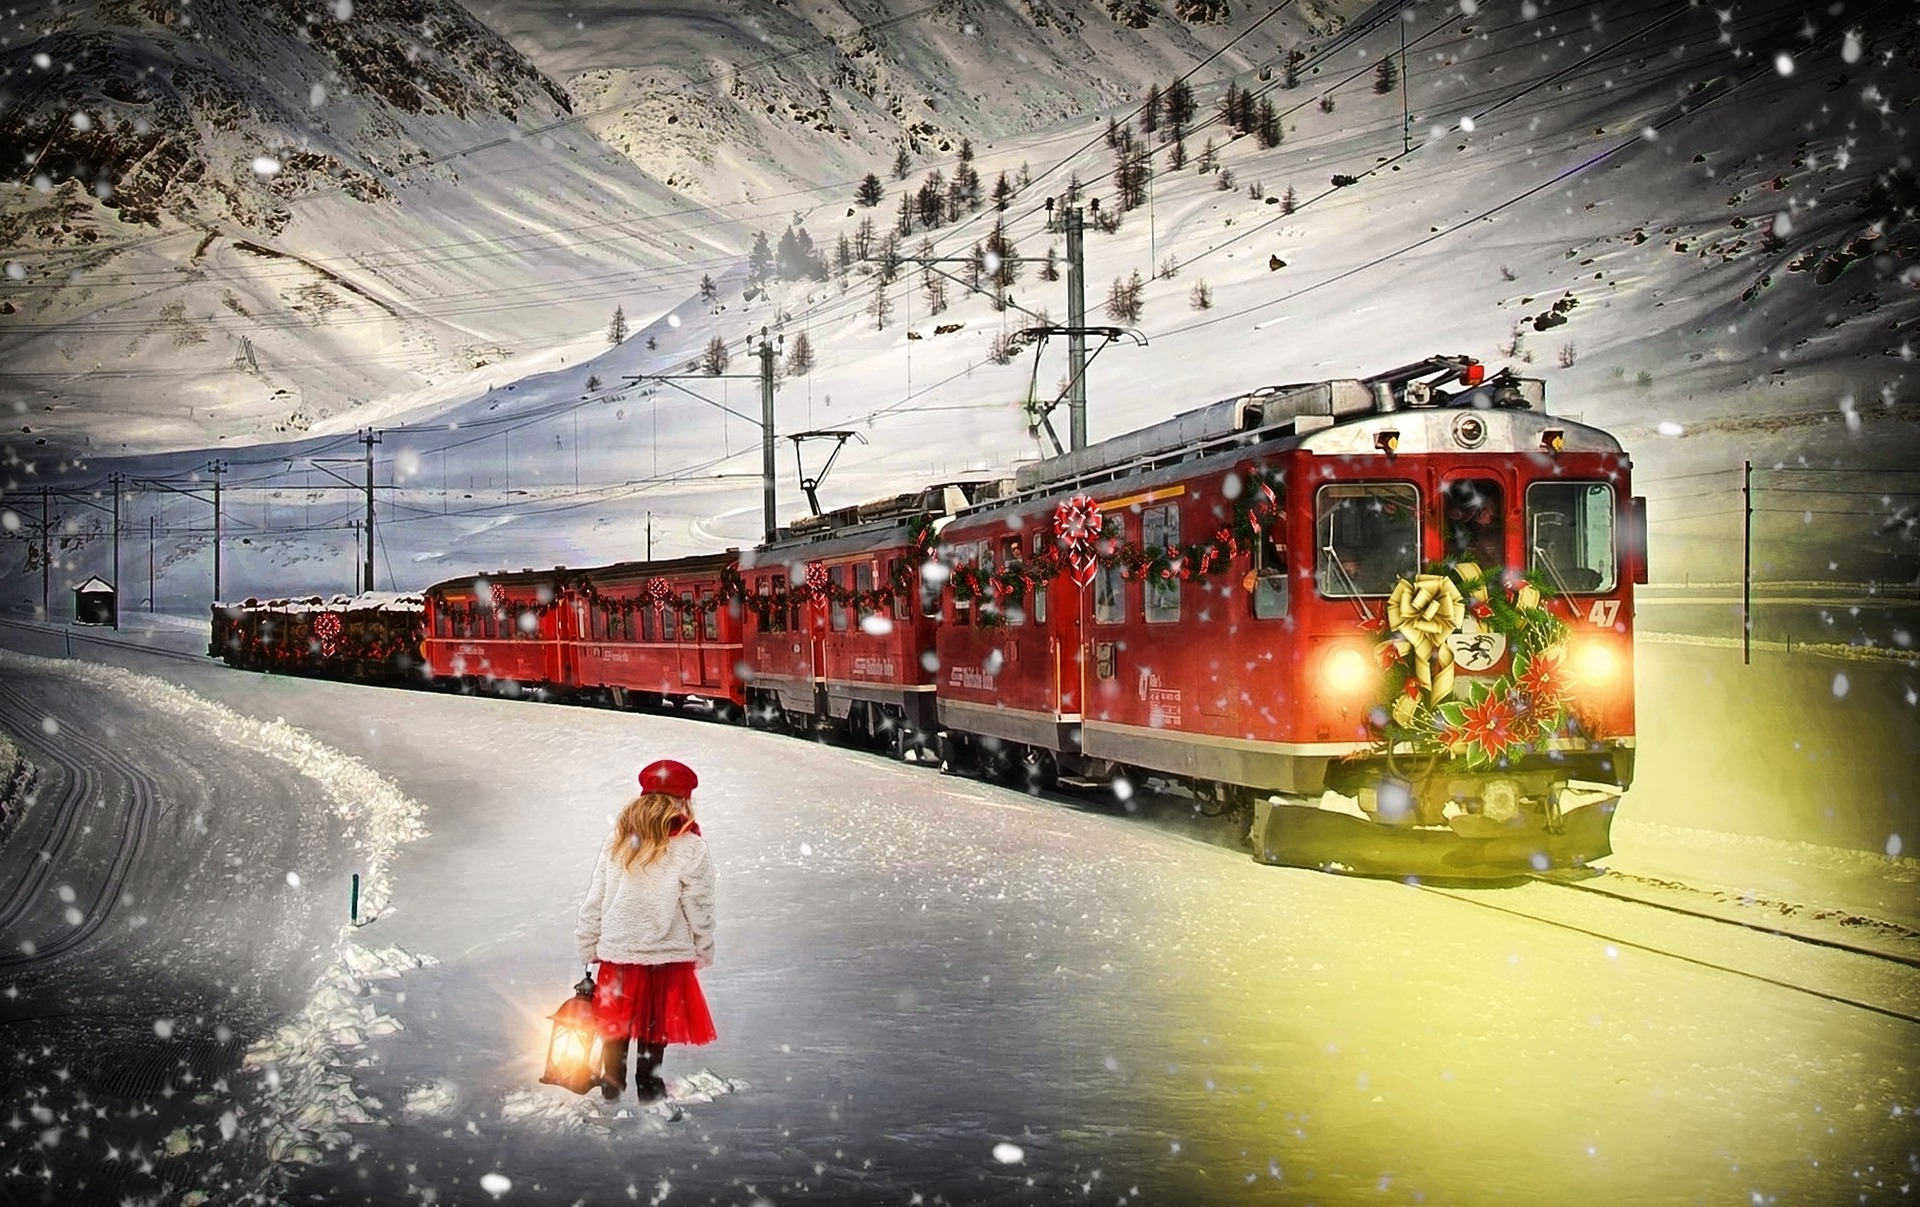 Polar Express Christmas Train Movie.Rsvp Now Polar Express Santa Trains And Holiday Train